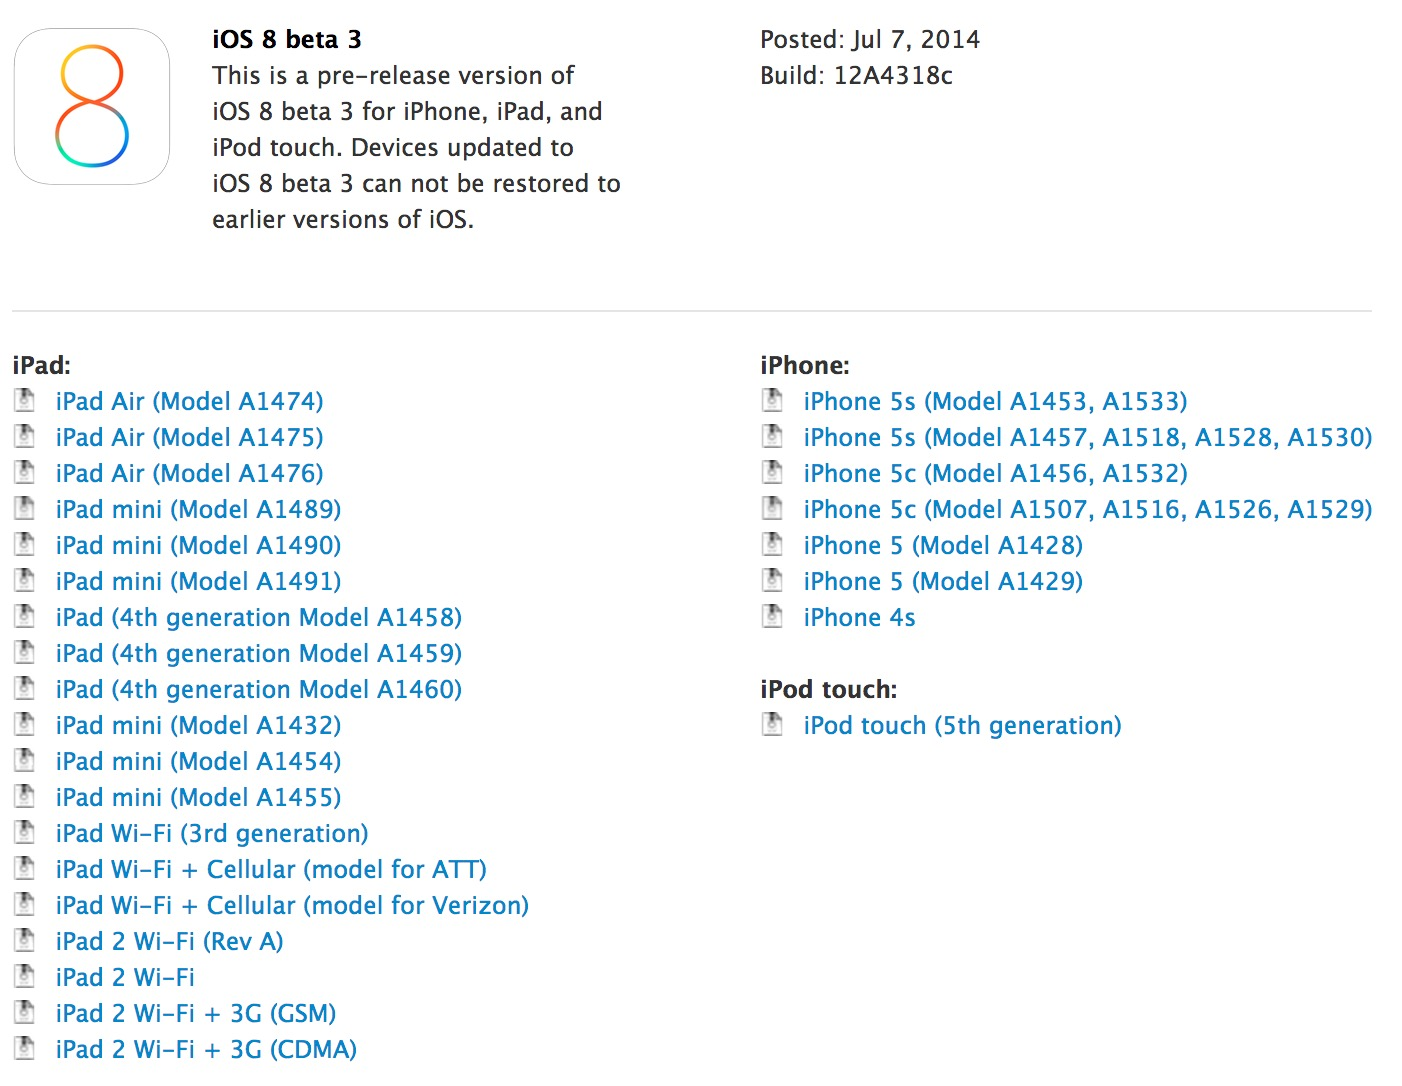 ios8beta3 released